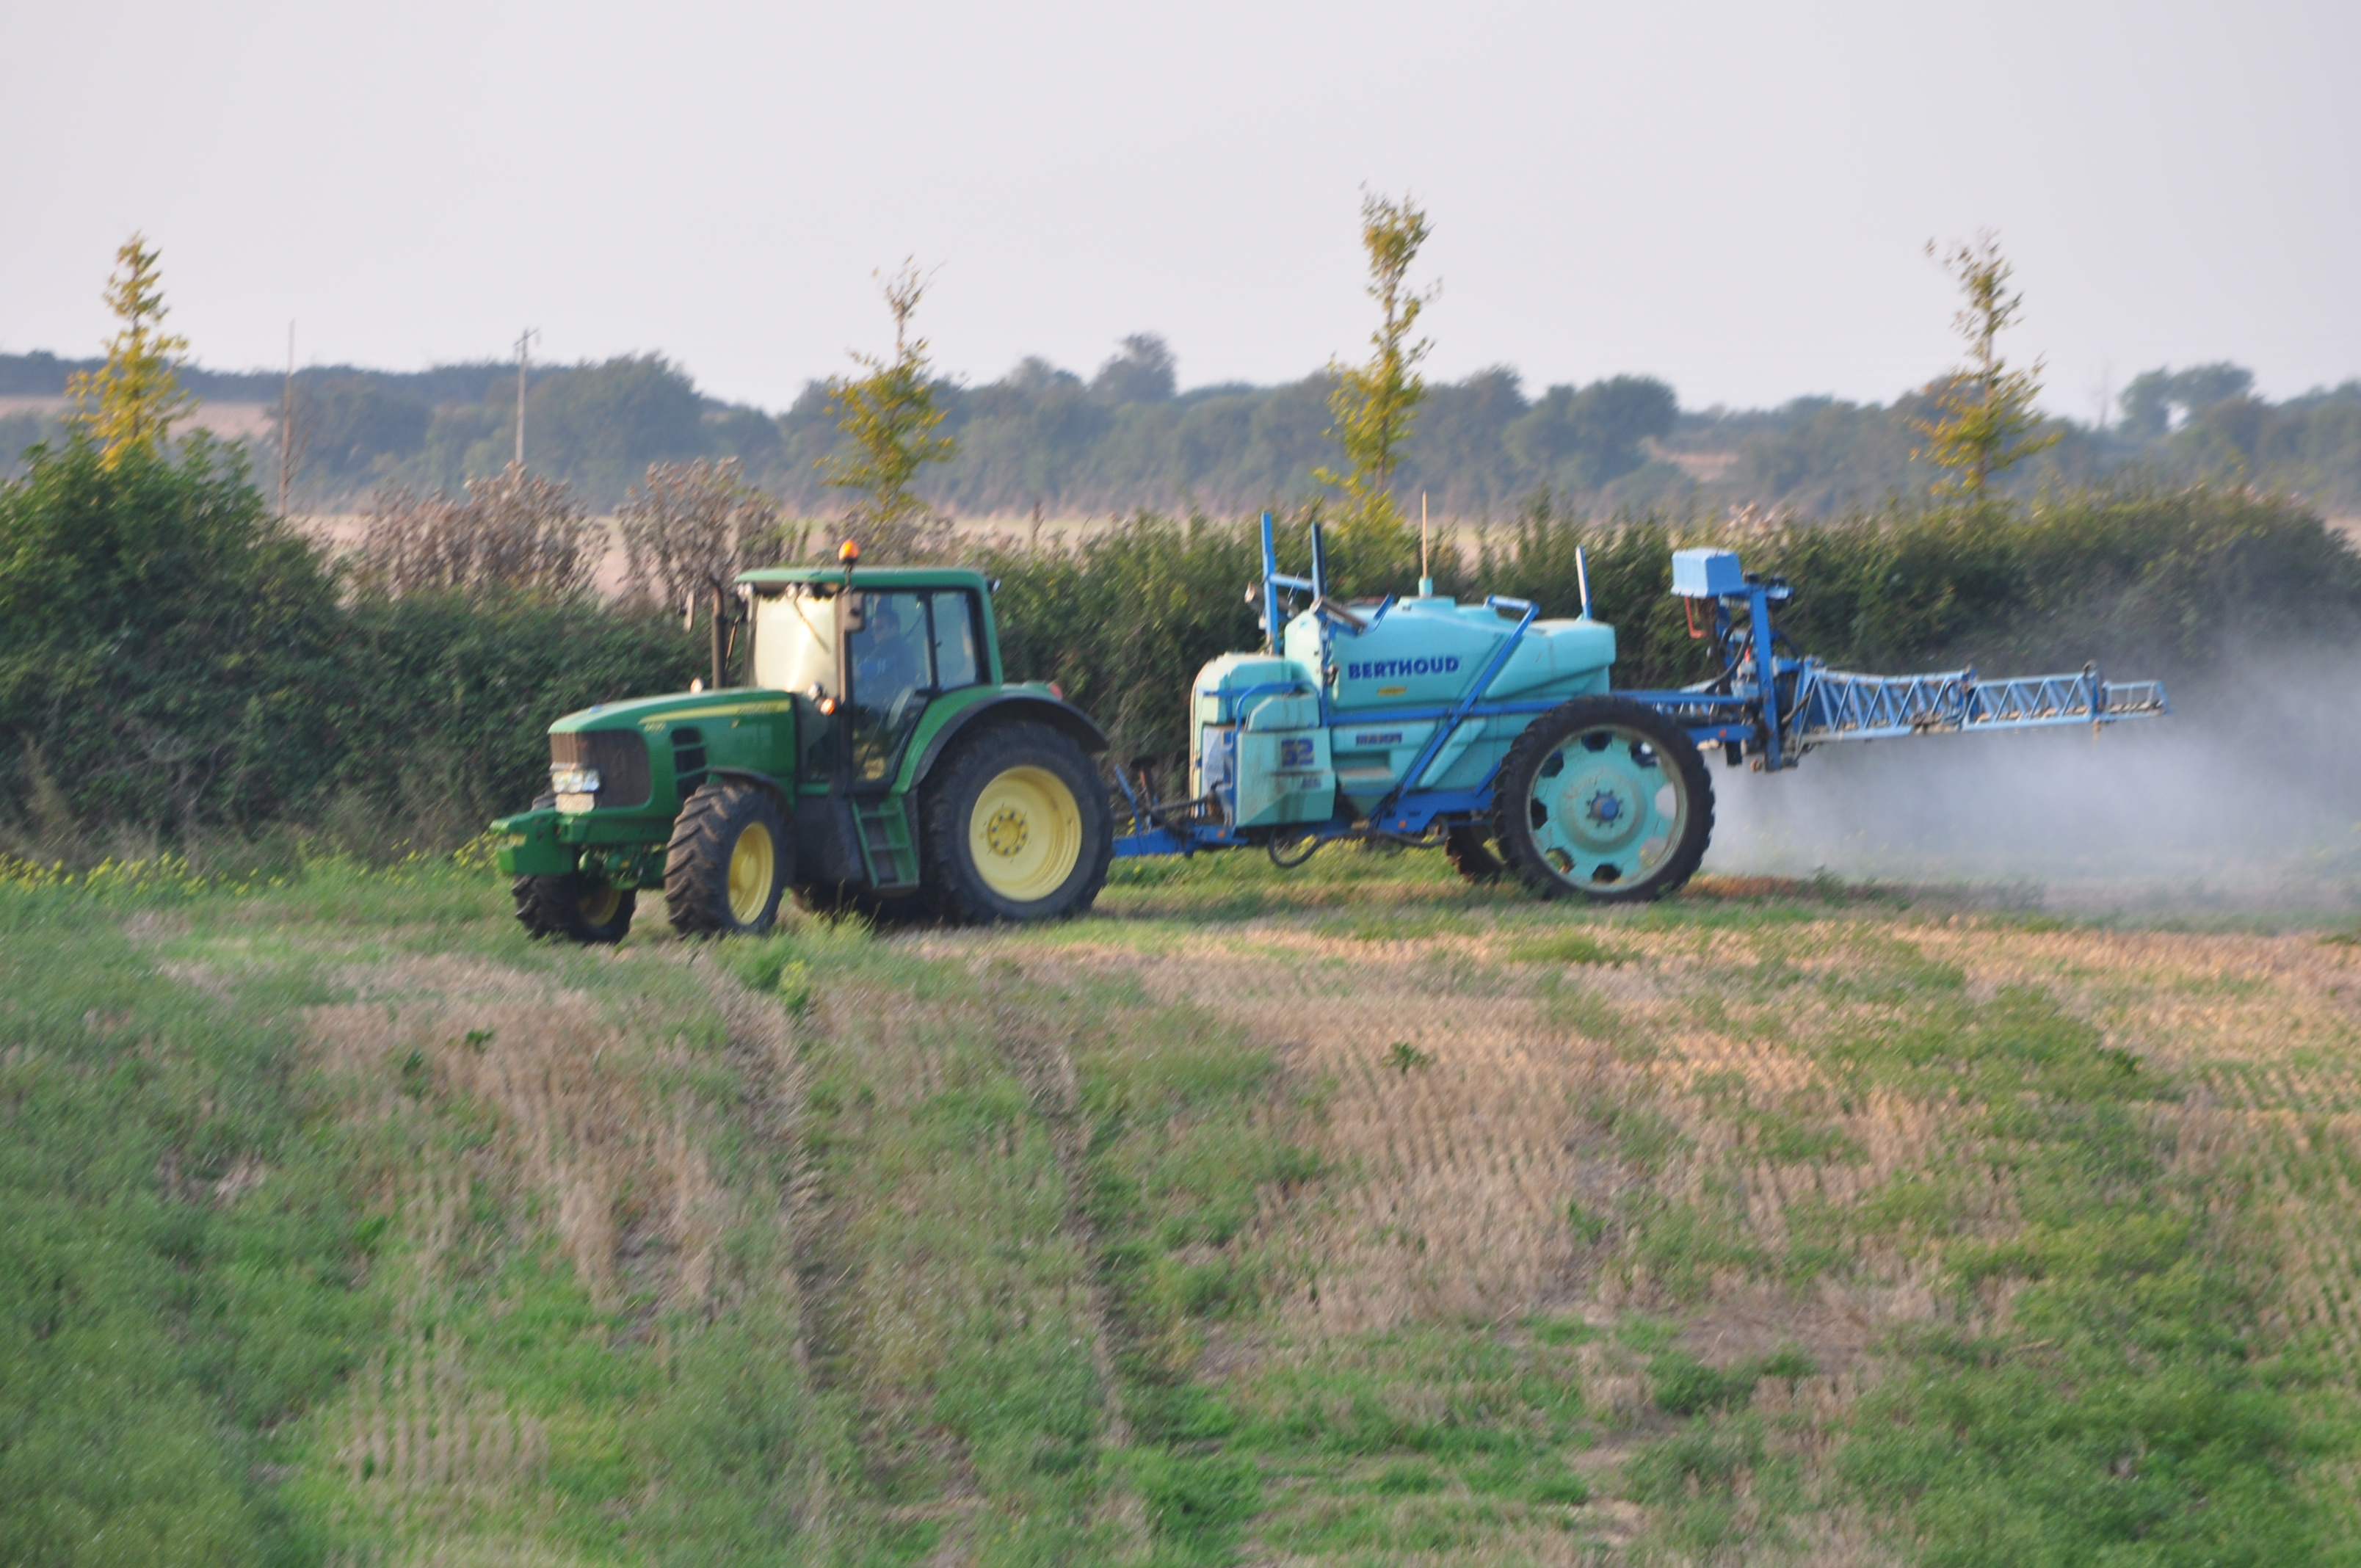 John Deere 6630 Tractor with a Berthoud Major 32 Trailed Crop Sprayer